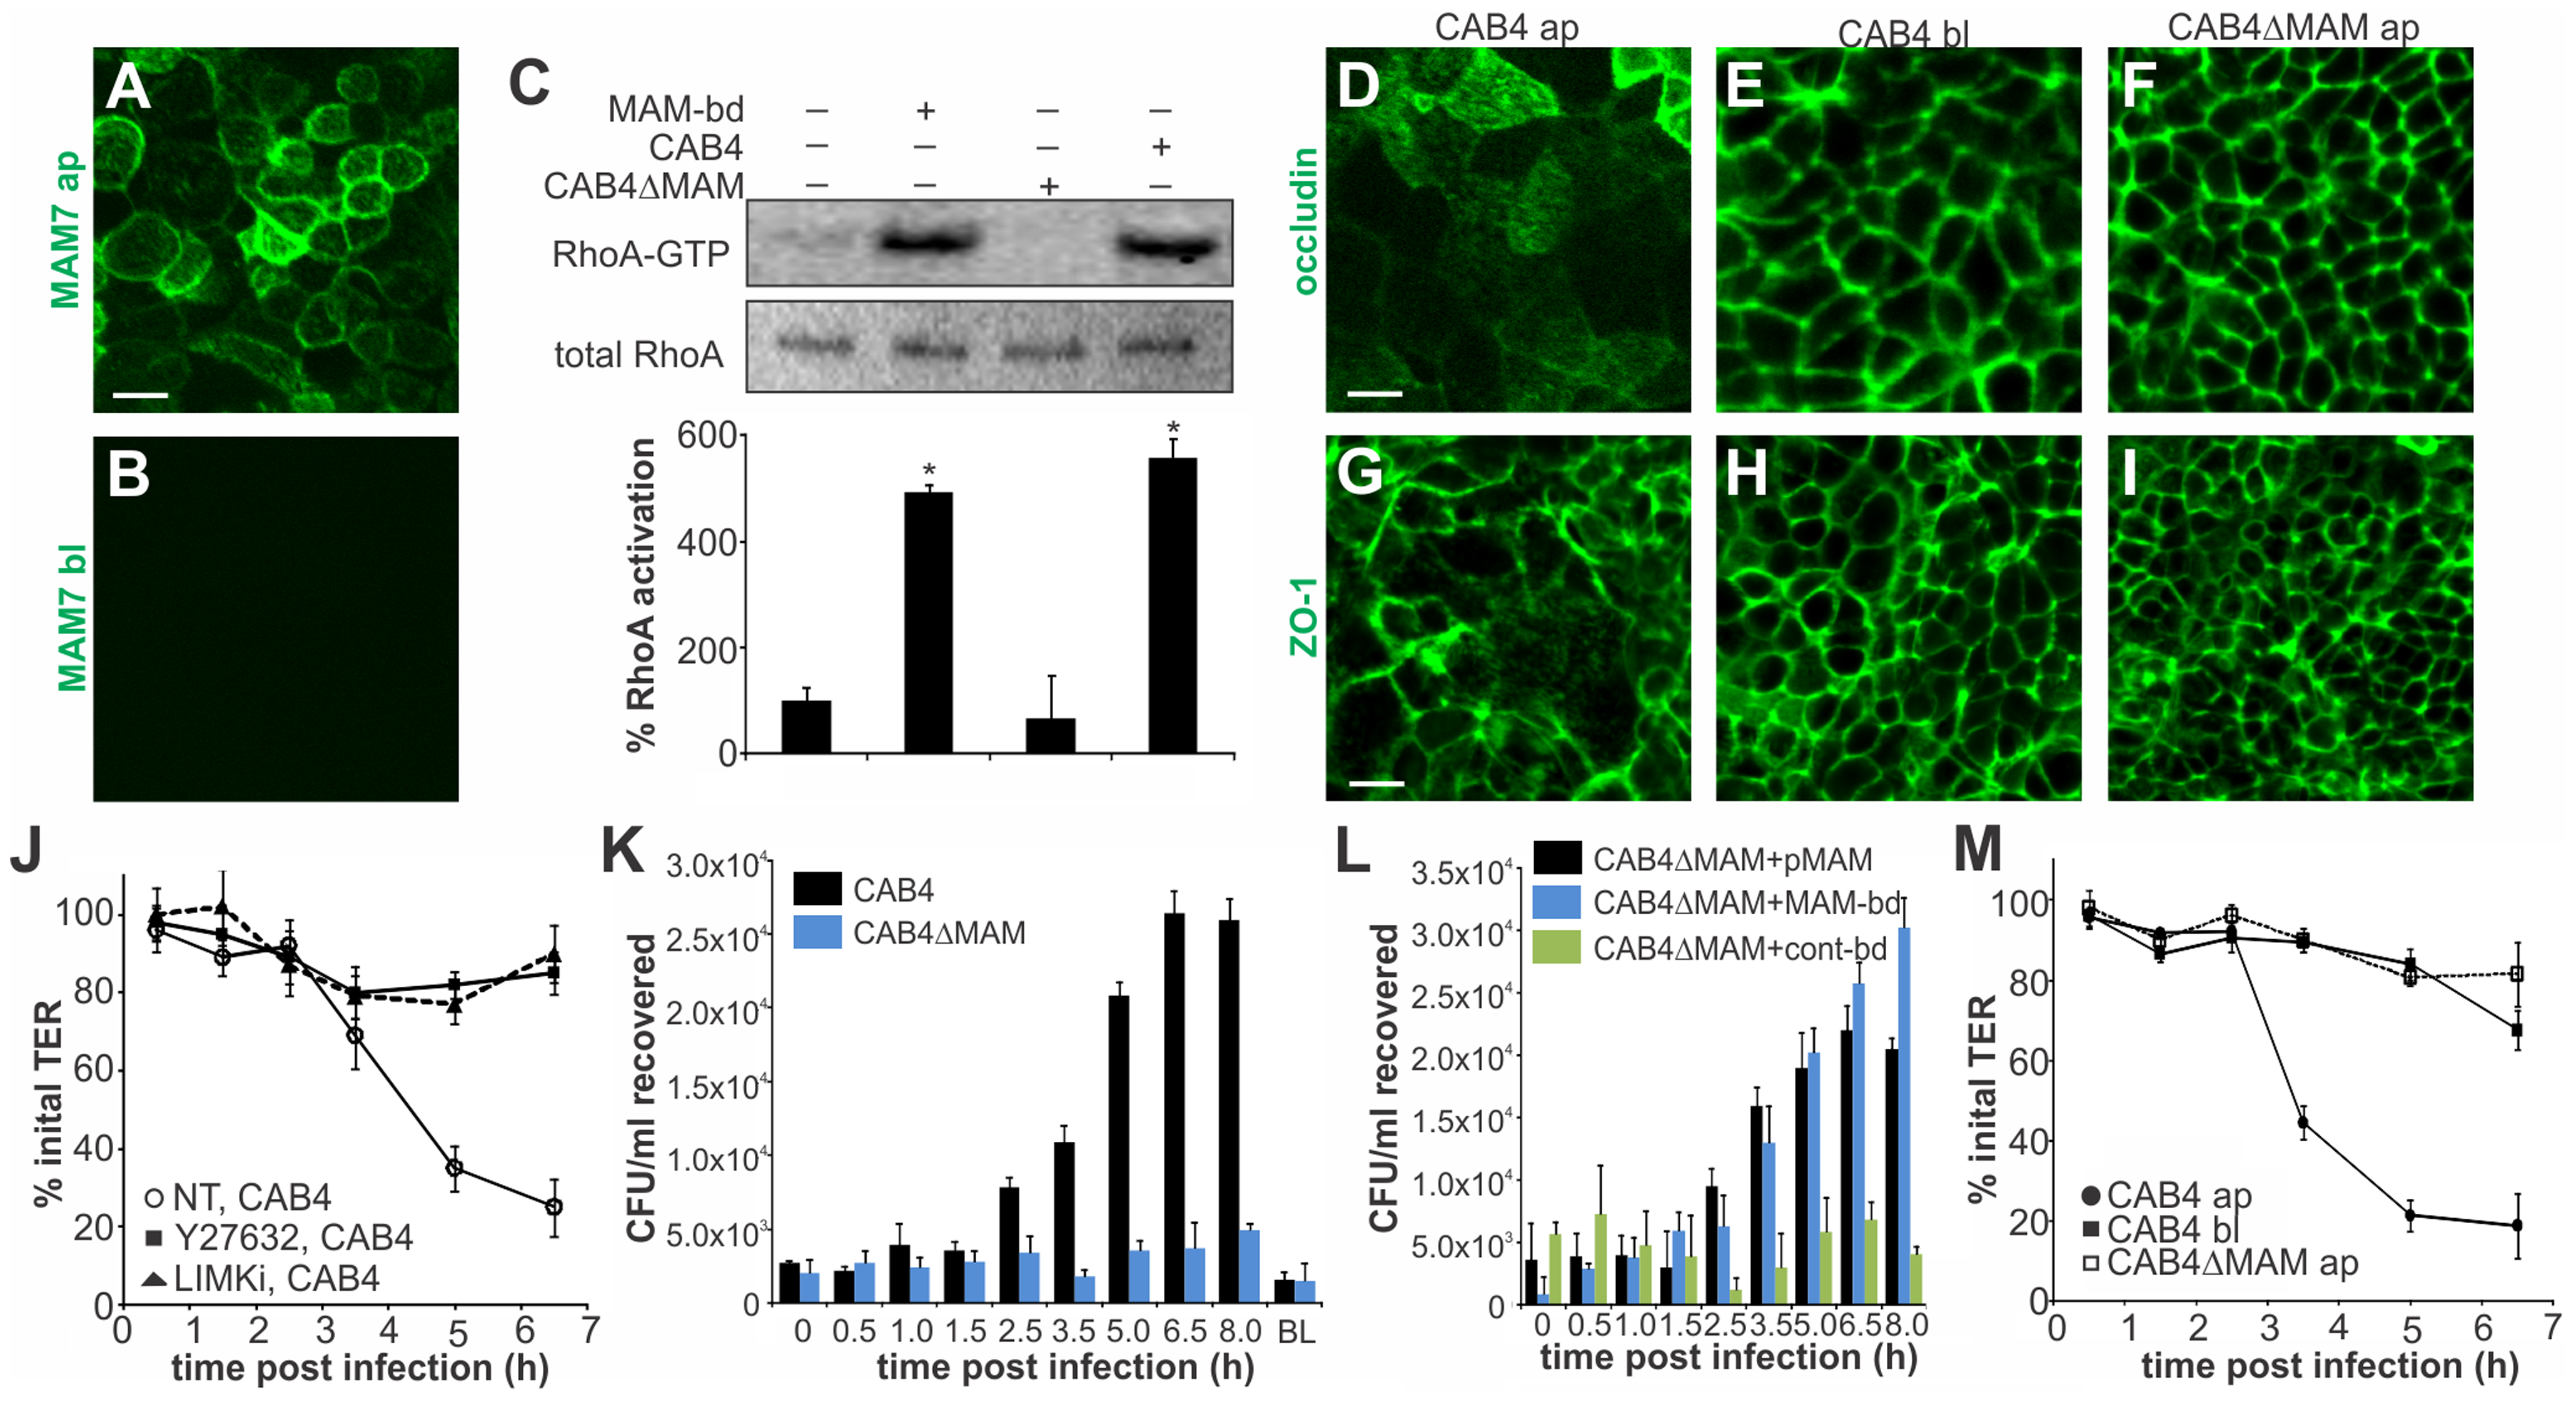 MAM adhesion is necessary and sufficient to disrupt epithelial barrier function and promote bacterial transmigration.